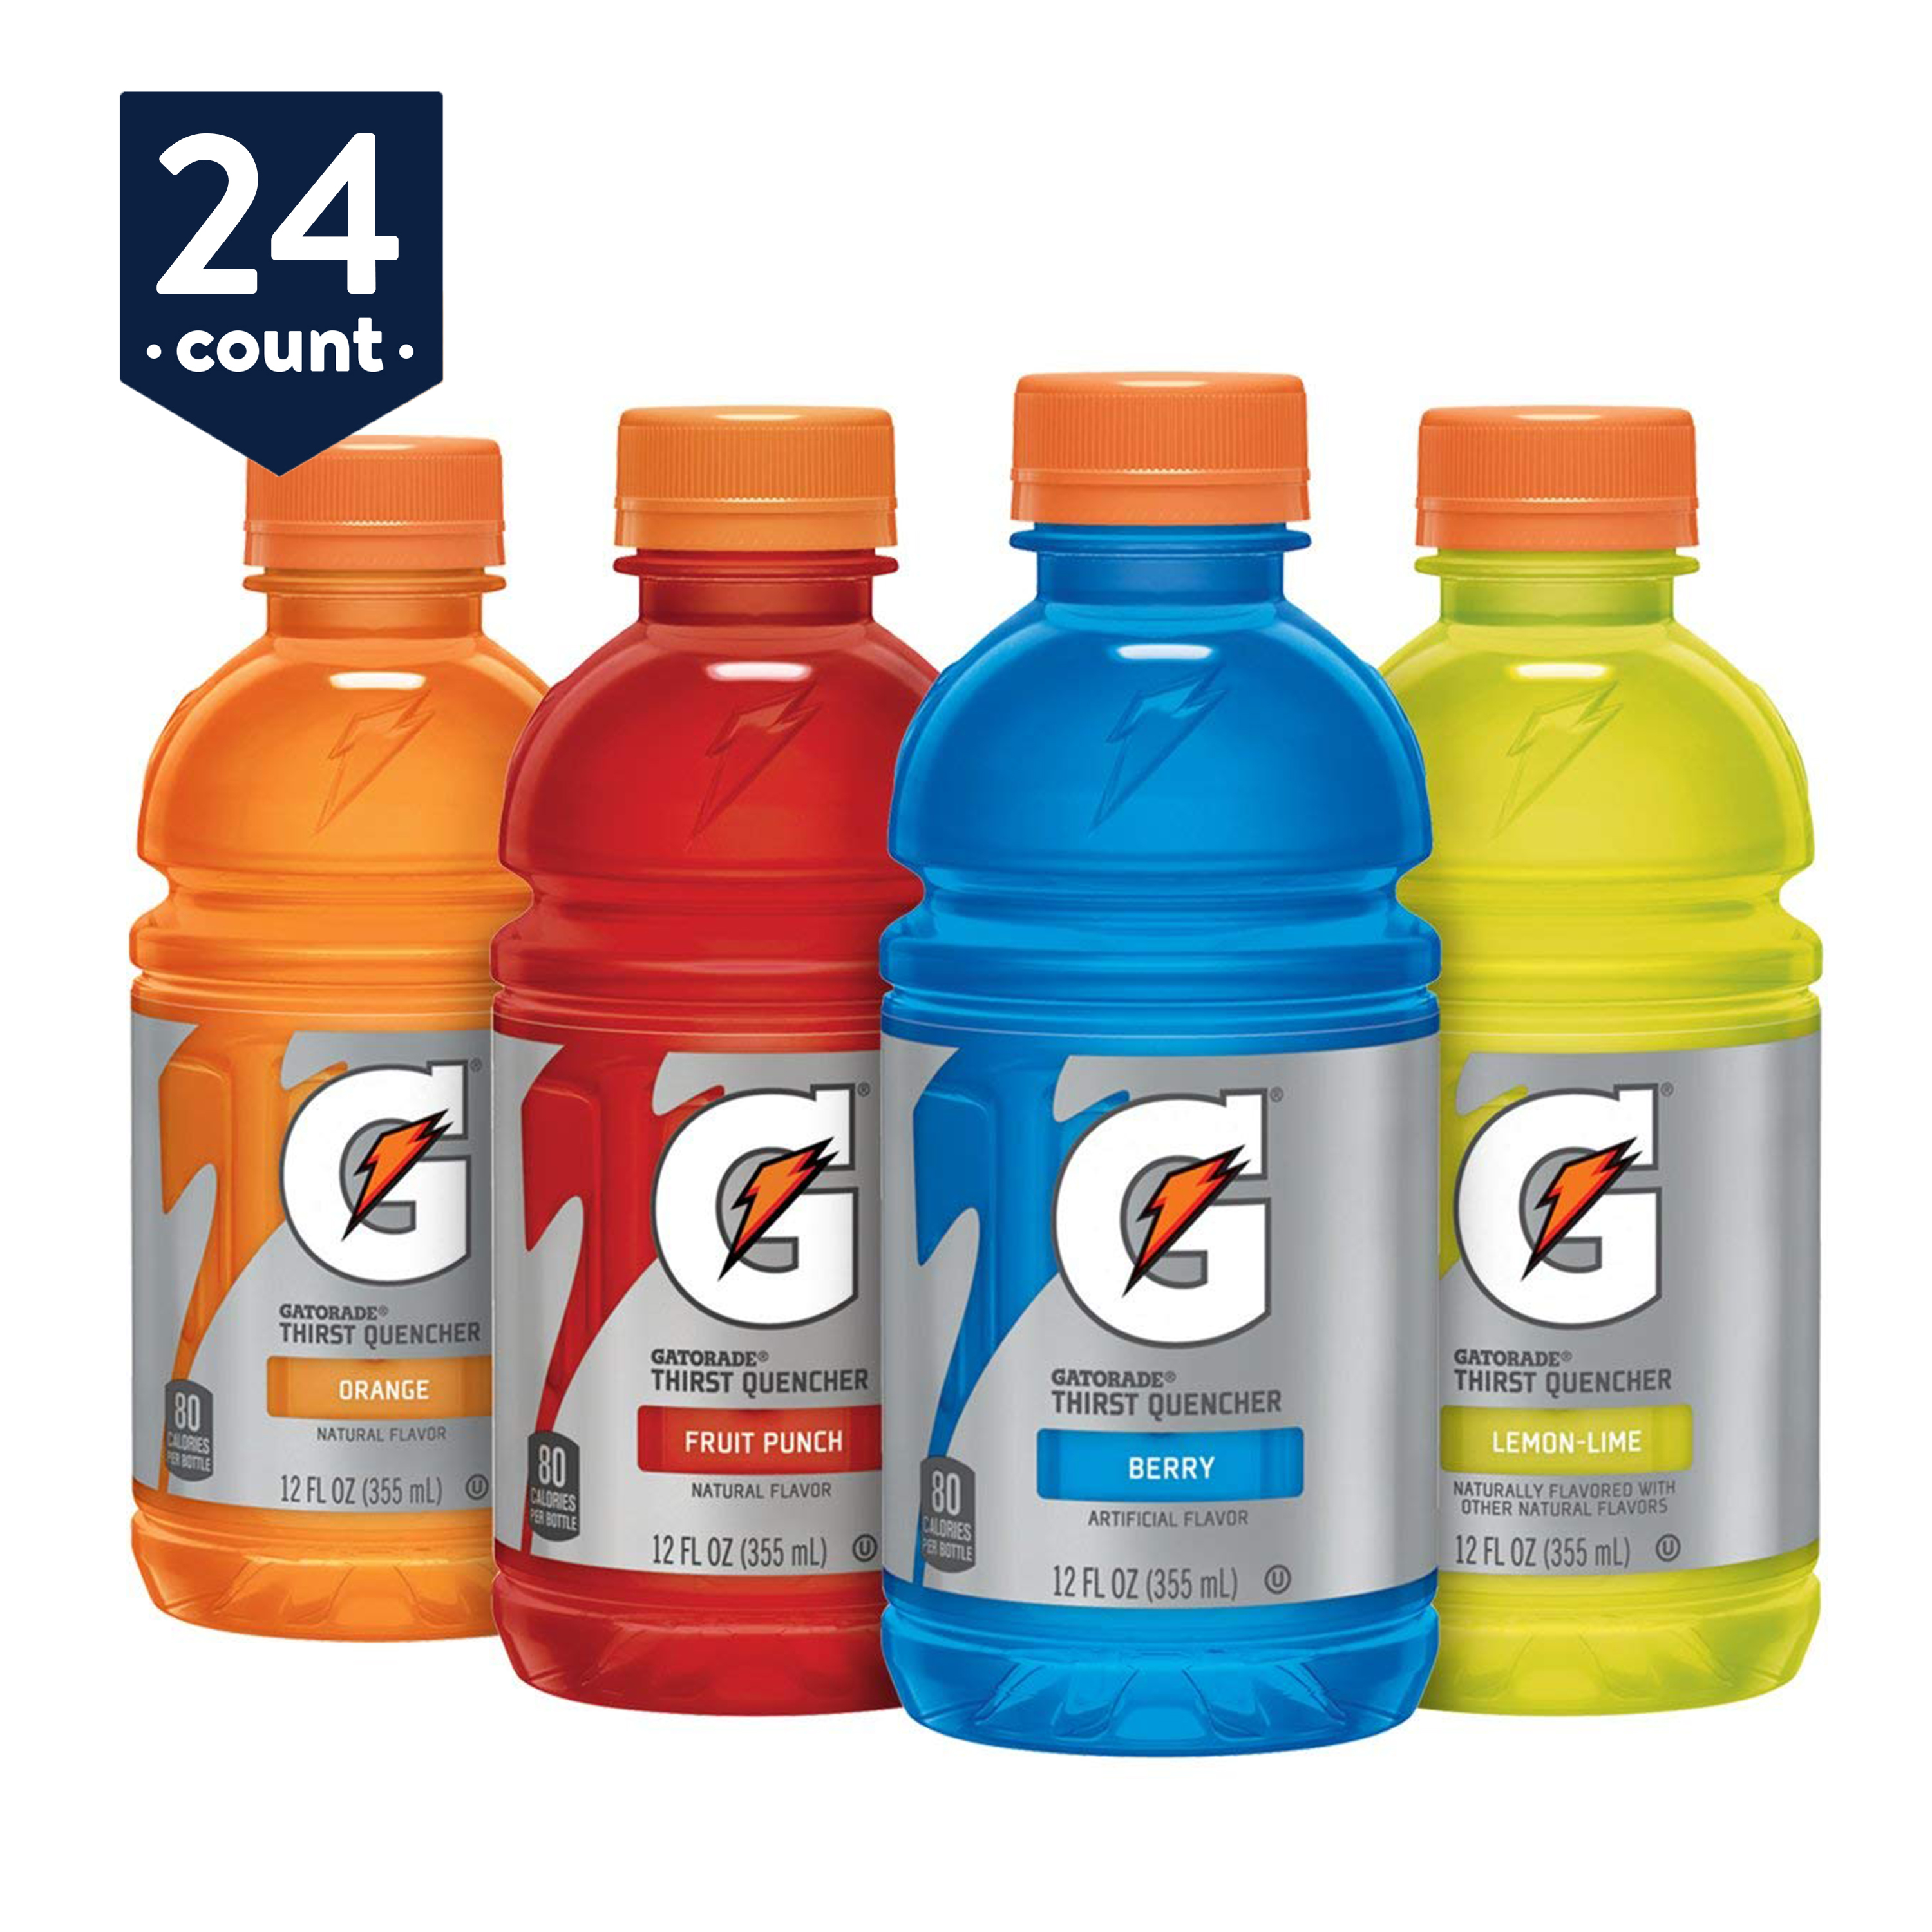 Gatorade Original Thirst Quencher Variety Pack, 12 oz Bottles, 24 Count